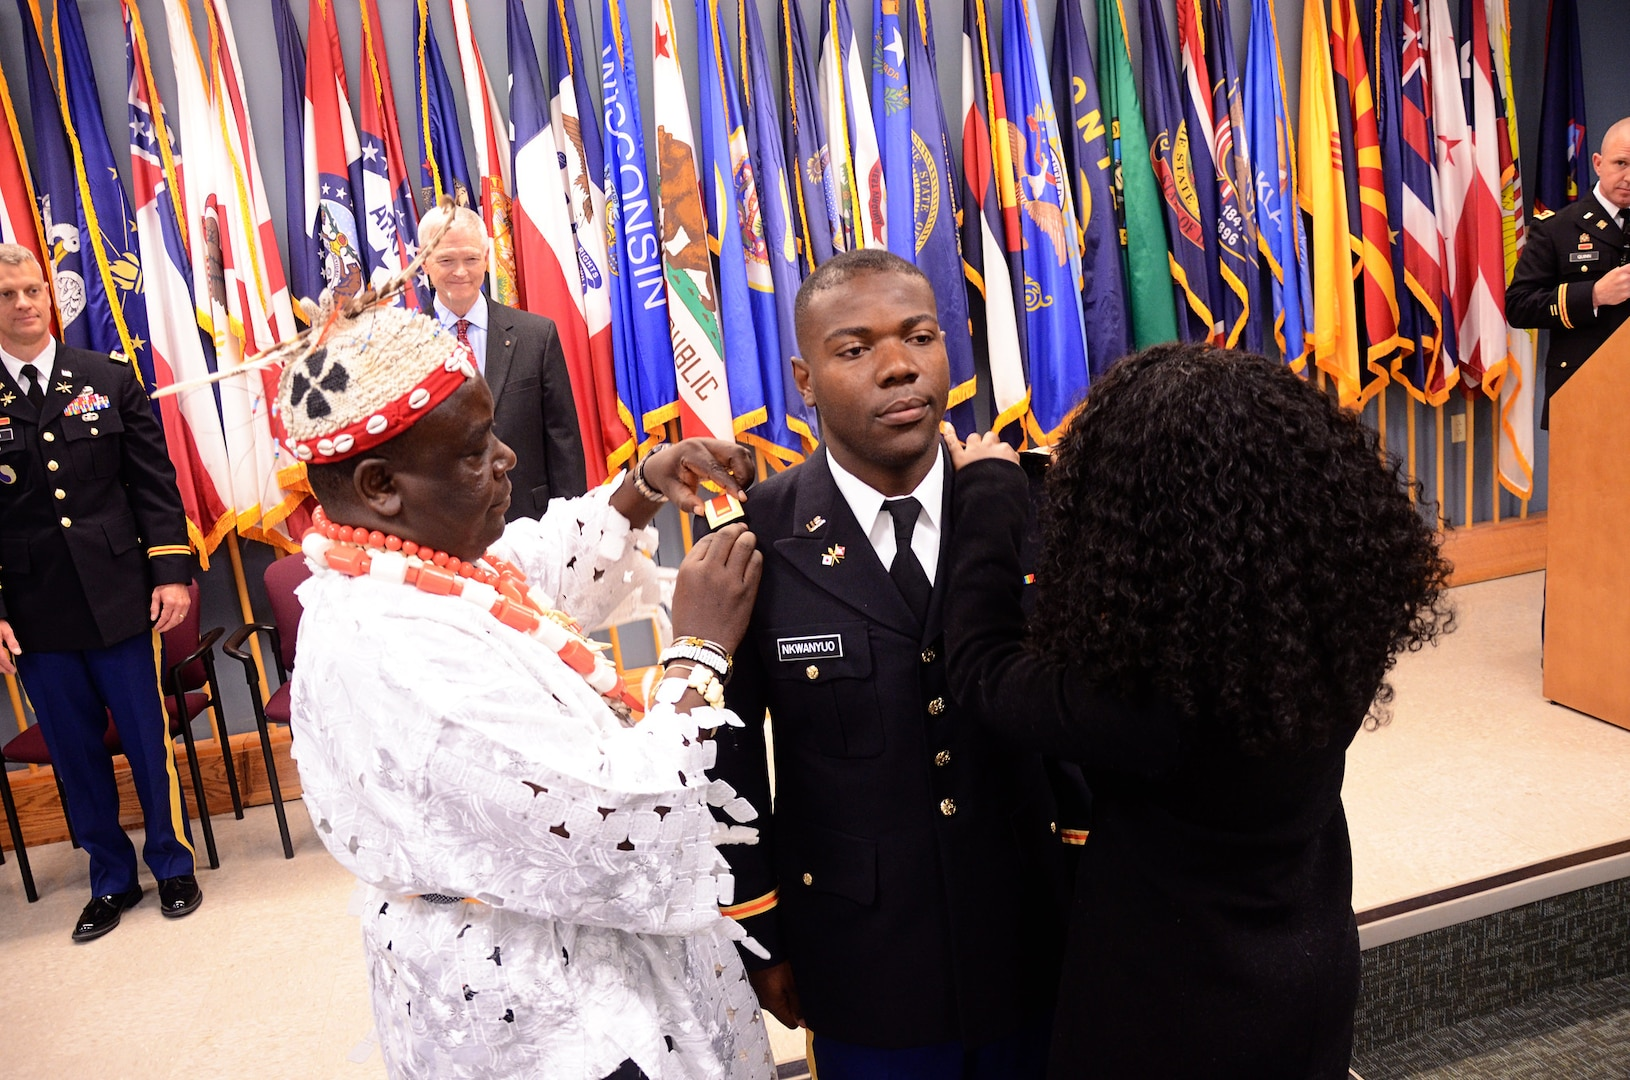 Second Lt. Abando A. Nkwanyou receives his lieutenant bars during a commissioning ceremony held April 29, 2018, at Fort Pickett, Virginia. (U.S. Army National Guard photo by Sgt. 1st Class Terra C. Gatti)